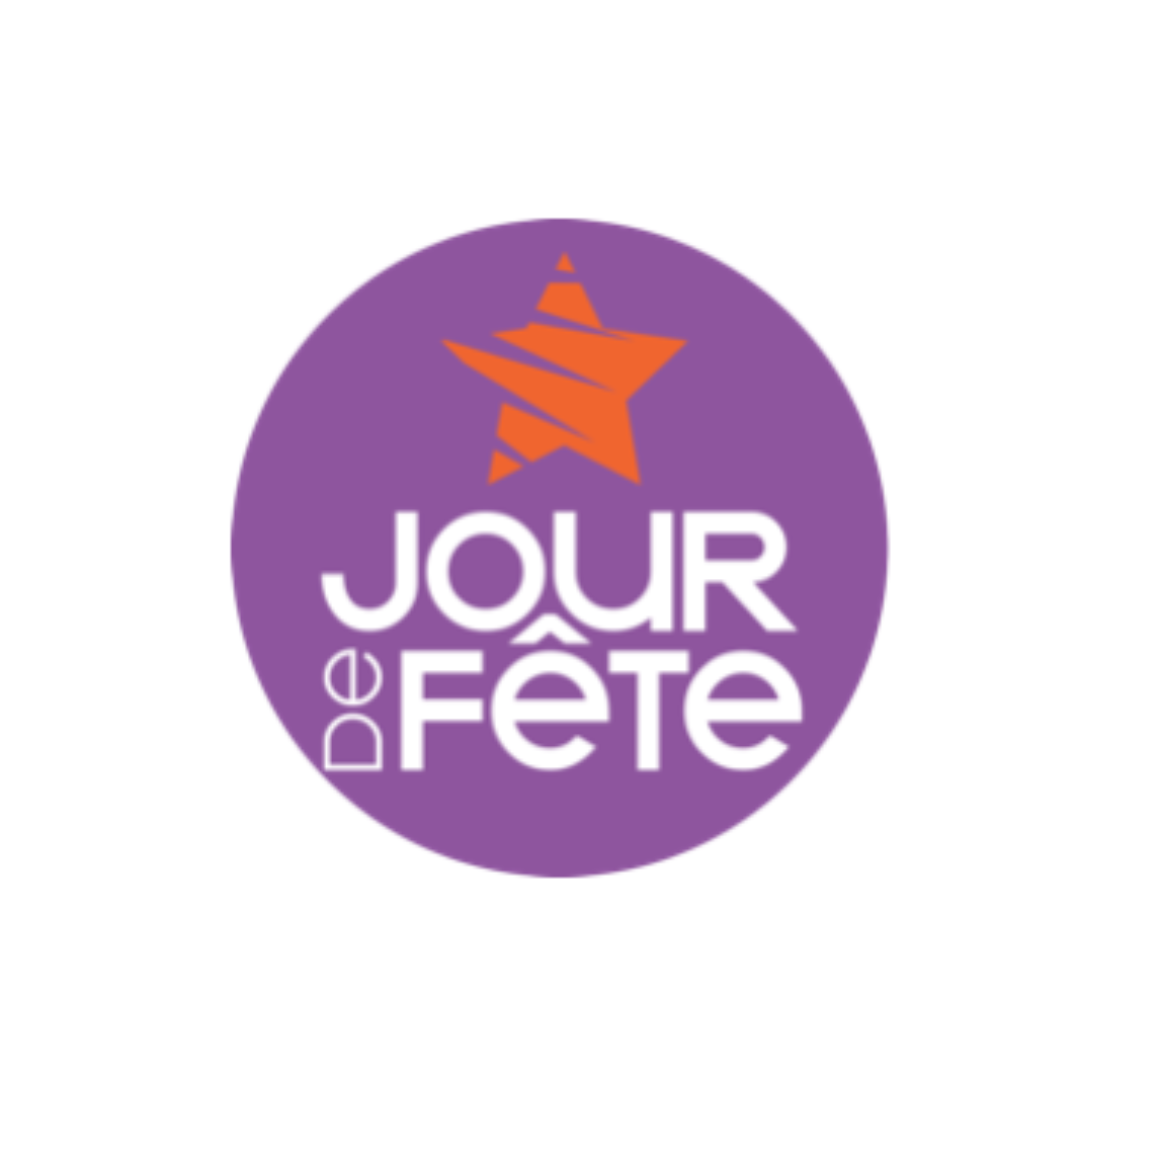 jourdefete-reunion-carre